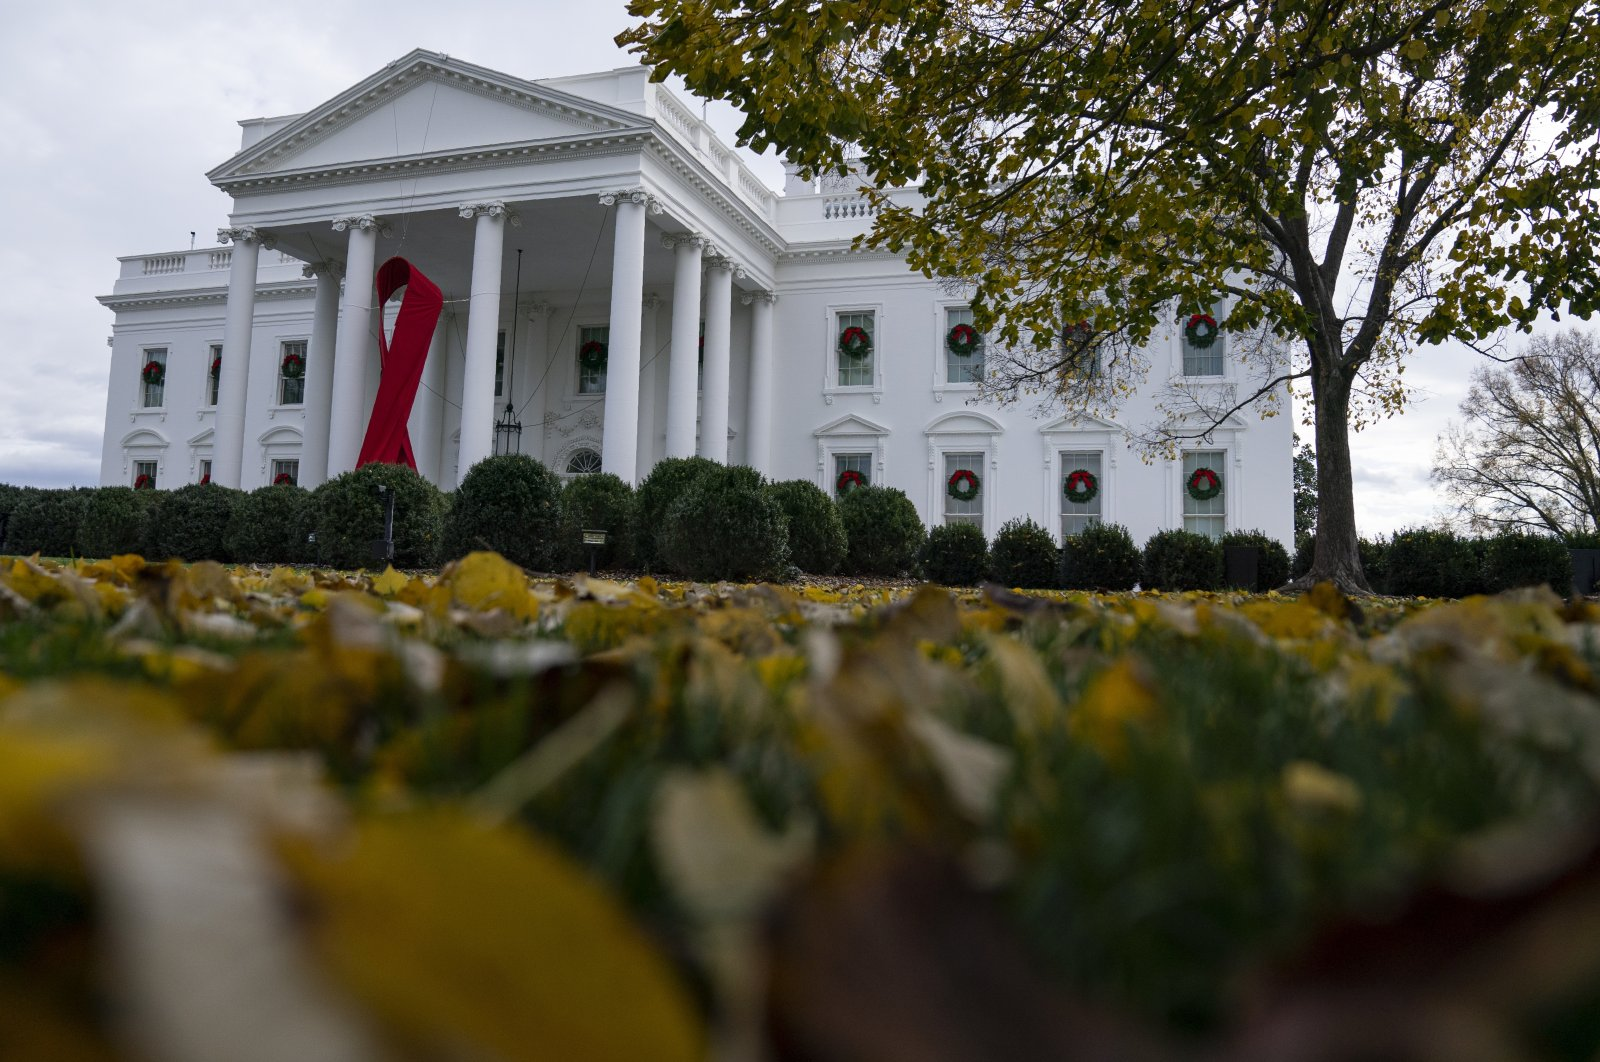 A ribbon hangs on the White House for World AIDS Day 2020, Dec. 1, 2020, in Washington. (AP Photo)